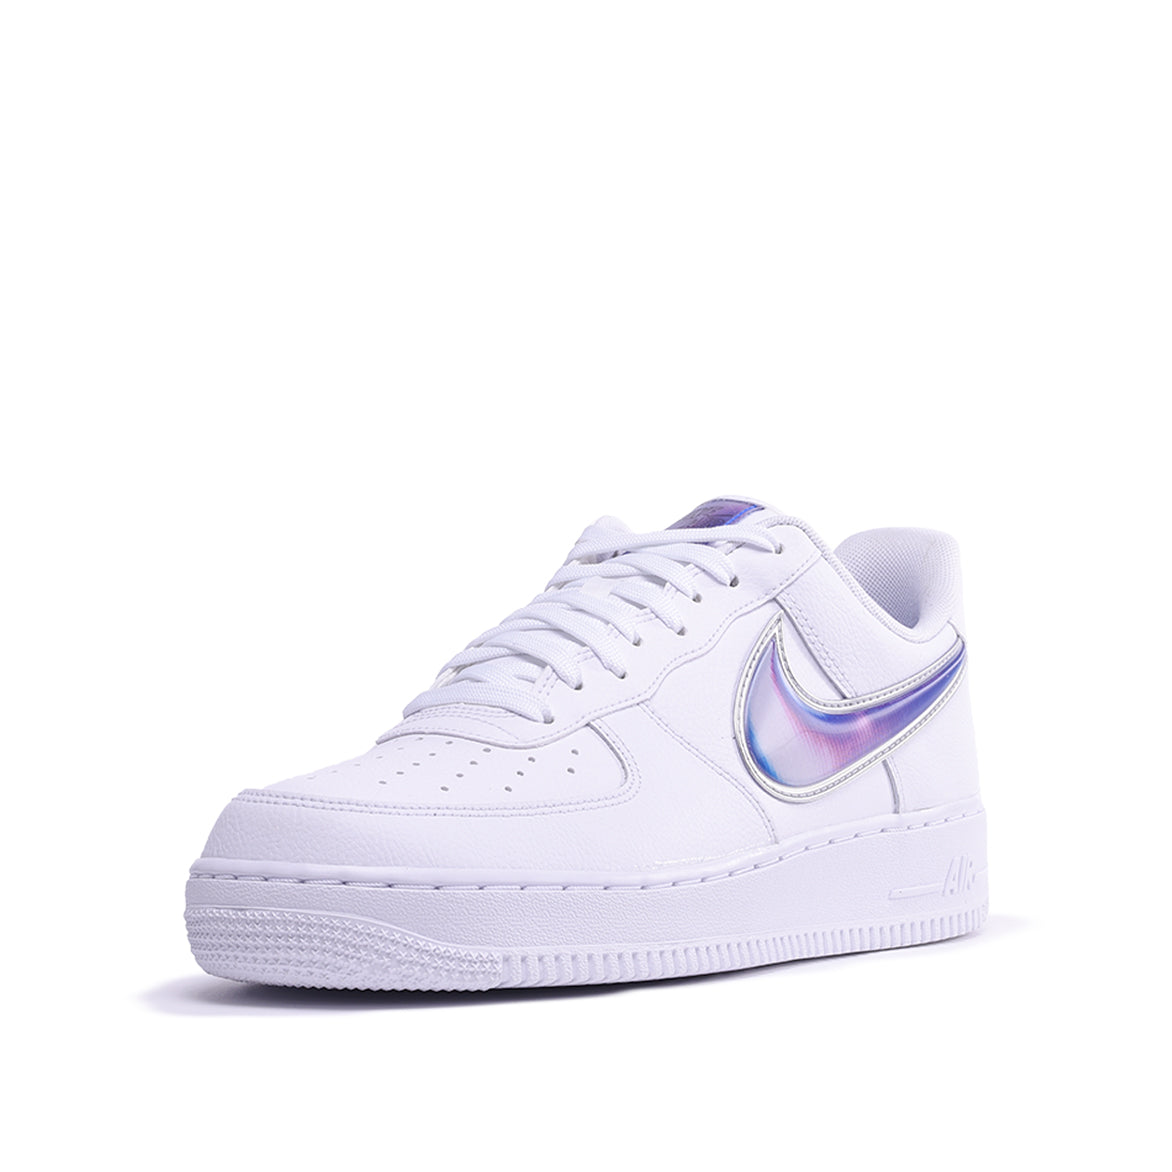 "AIR FORCE 1 `07 LV8 3 ""OVERSIZED SWOOSH"" - WHITE / PURPLE"